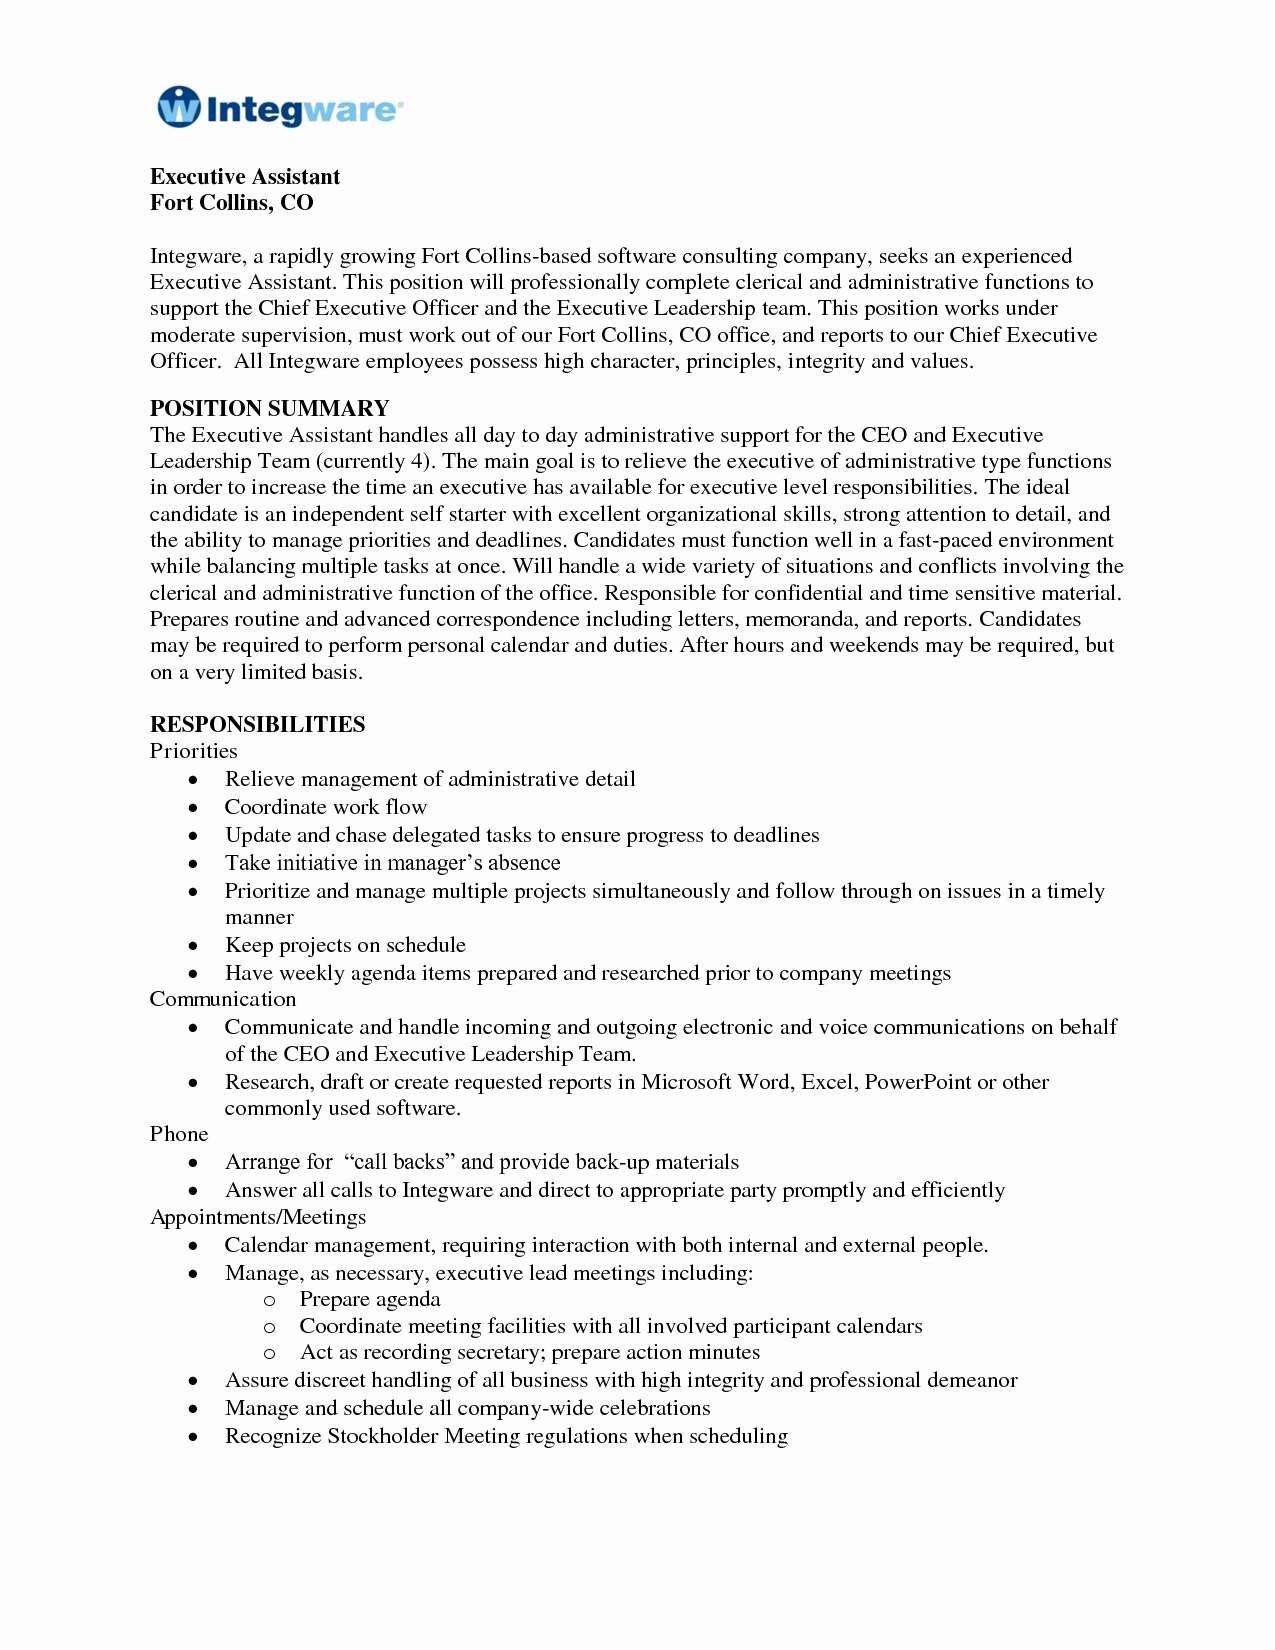 Collaborate Synonym Resume - 23 Collaborate Synonym Resume